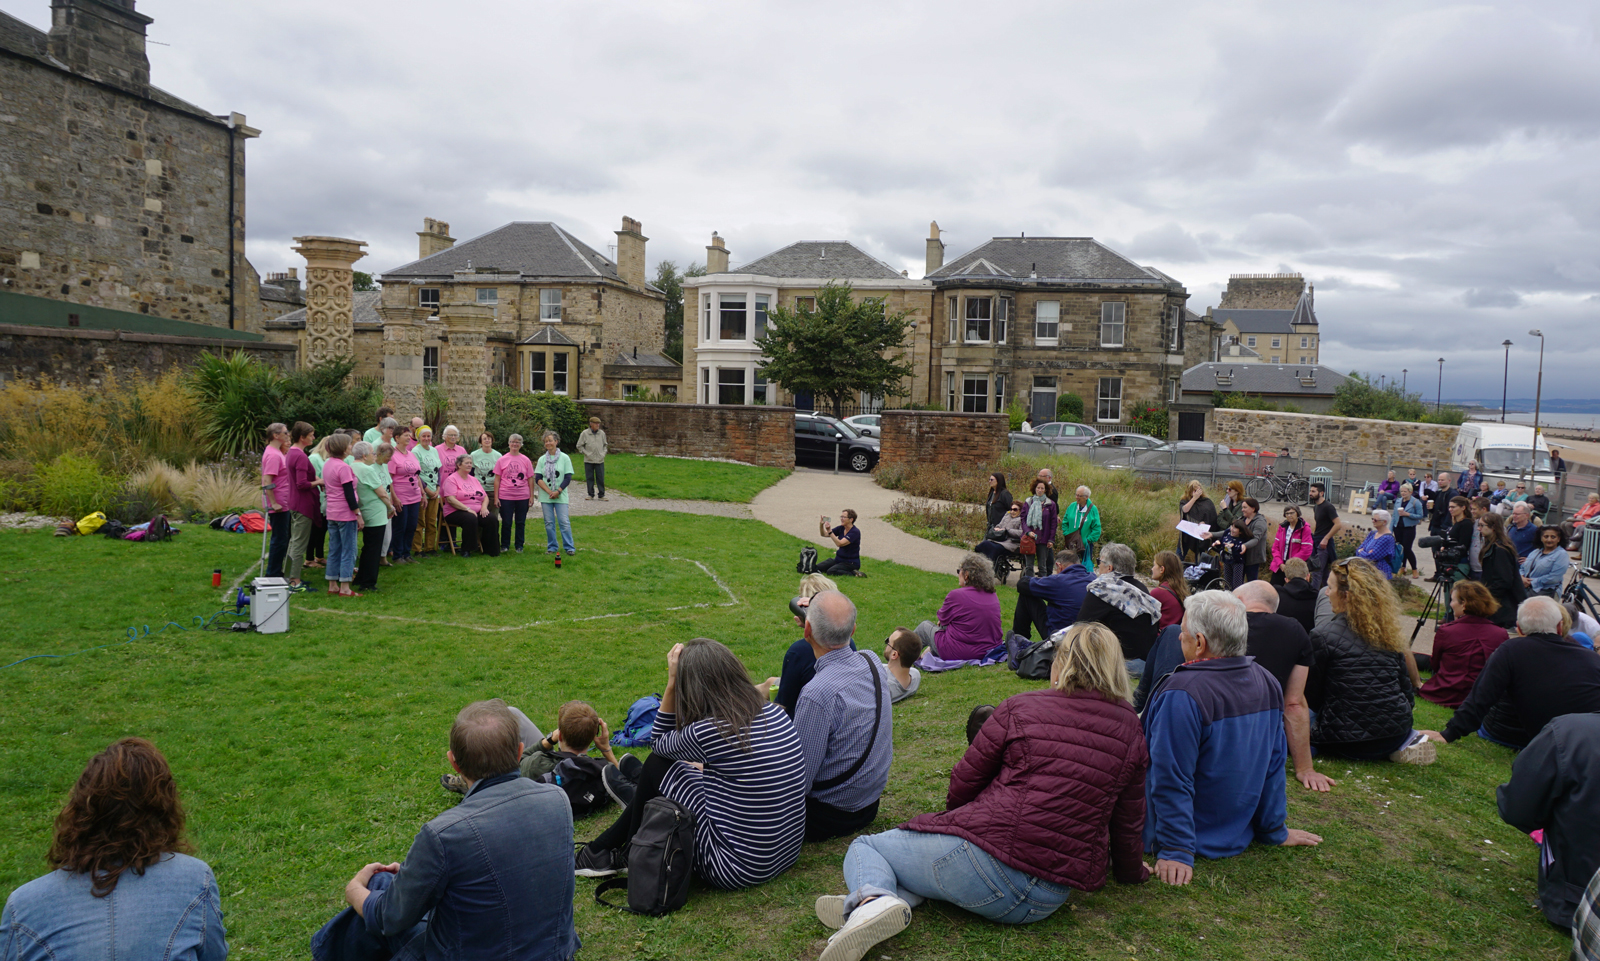 Bandstand Project performing at old site of Portobello Bandstand